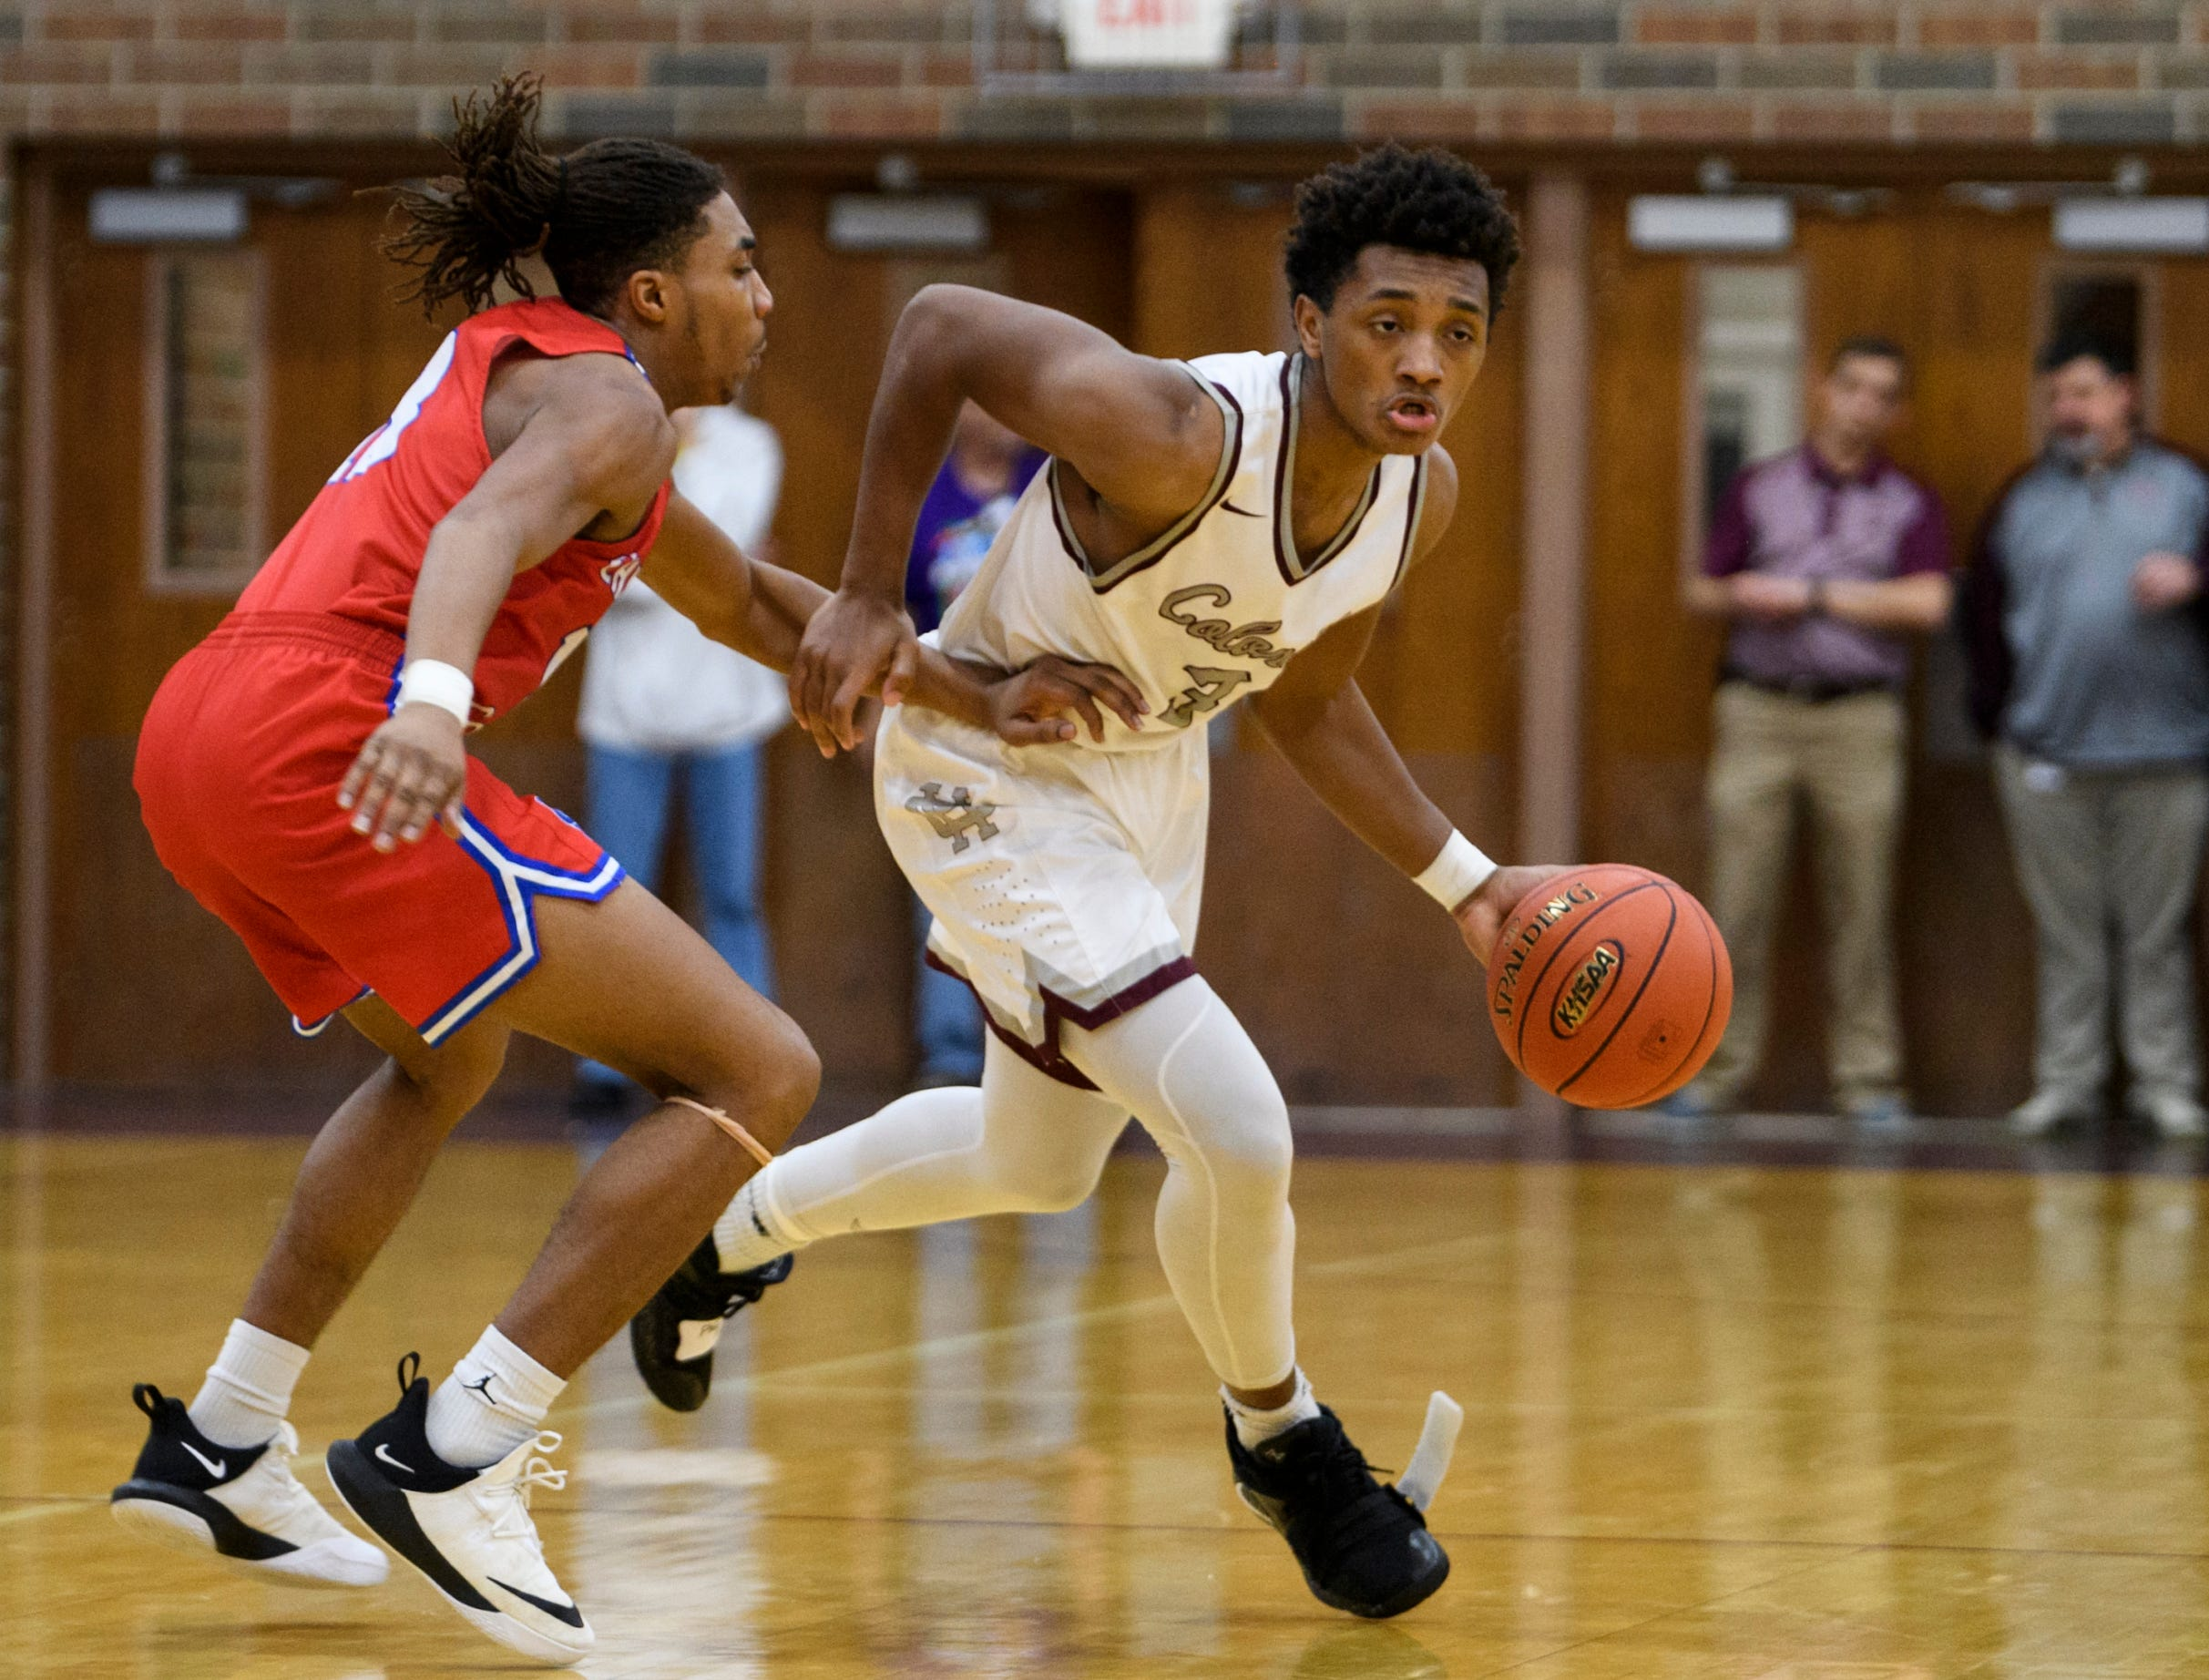 Henderson's Daymian Dixon (3) dribbles around Christian County's Eric Brody (13) during the second quarter at Henderson County High School in Henderson, Ky., Friday, Dec. 14, 2018. Christian County defeated Henderson County 79-71.